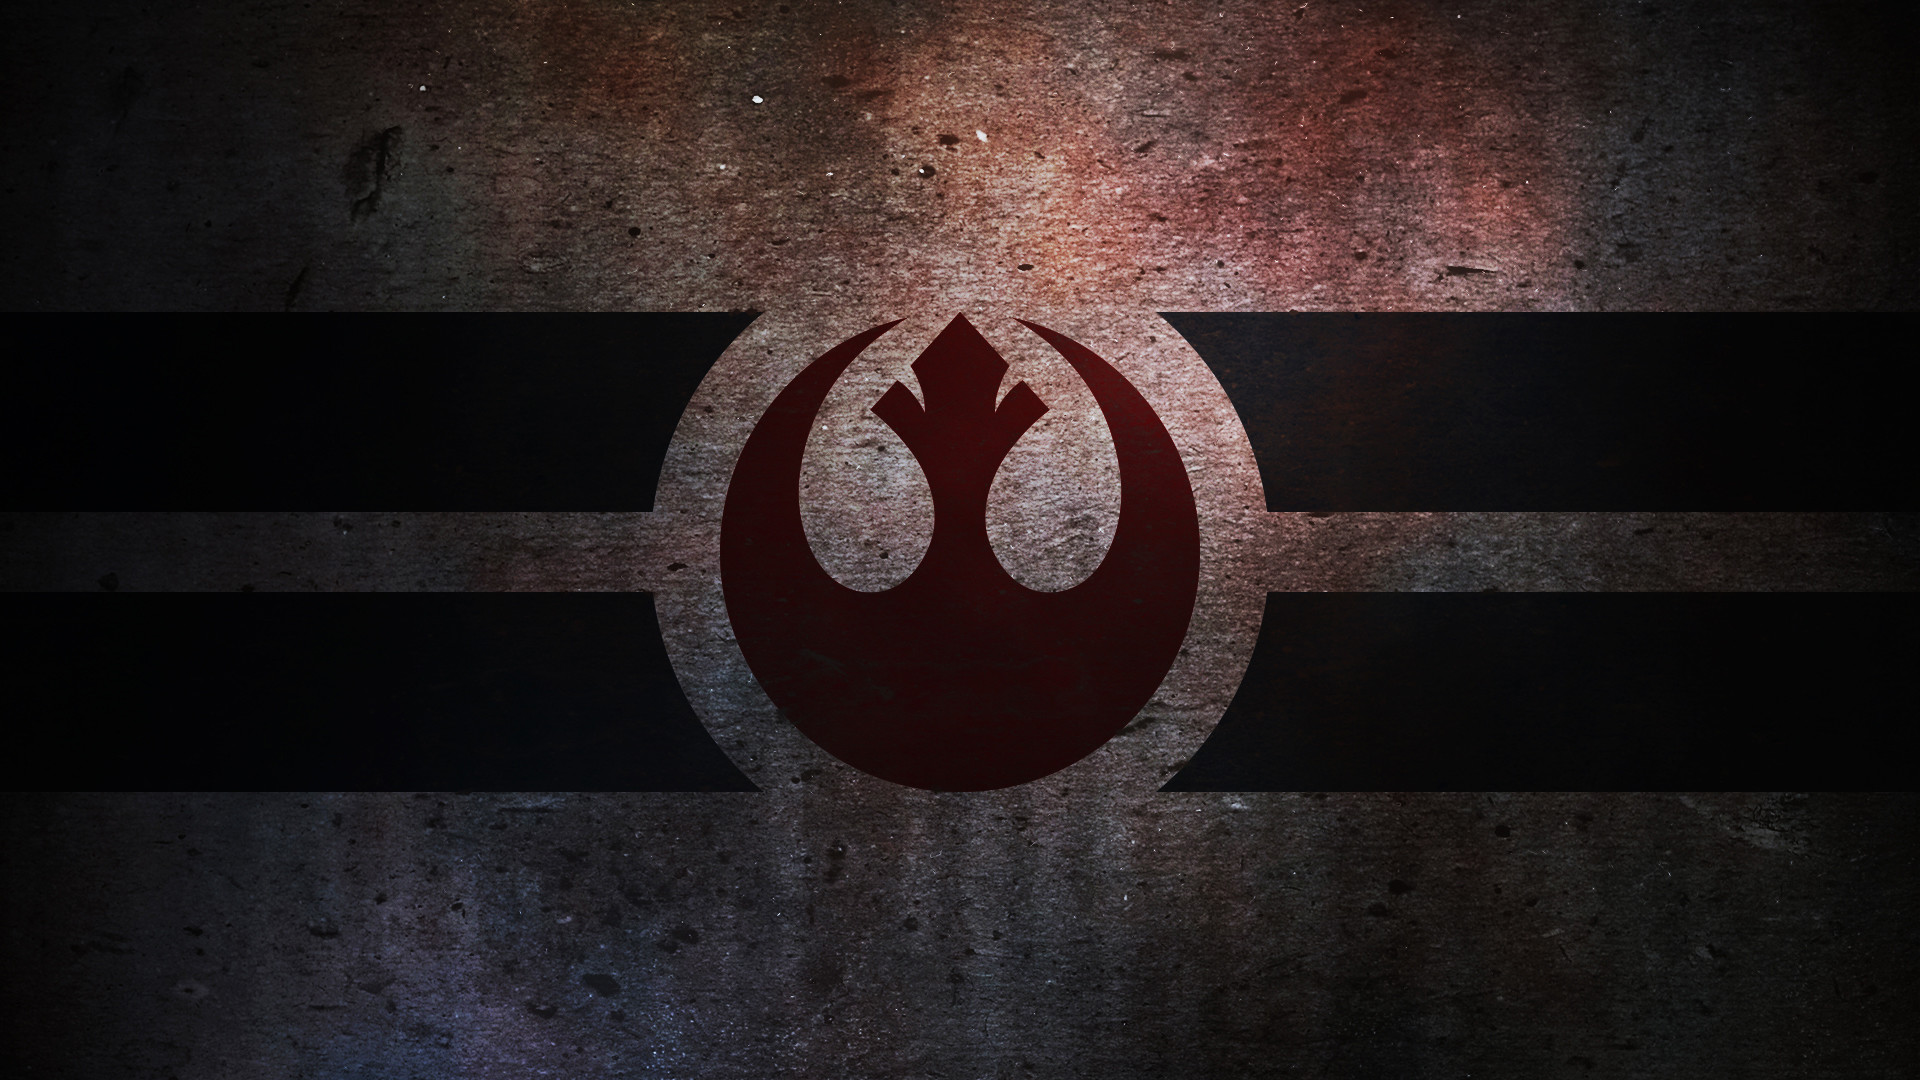 Star Wars Jedi Wallpapers For Iphone As Wallpaper HD